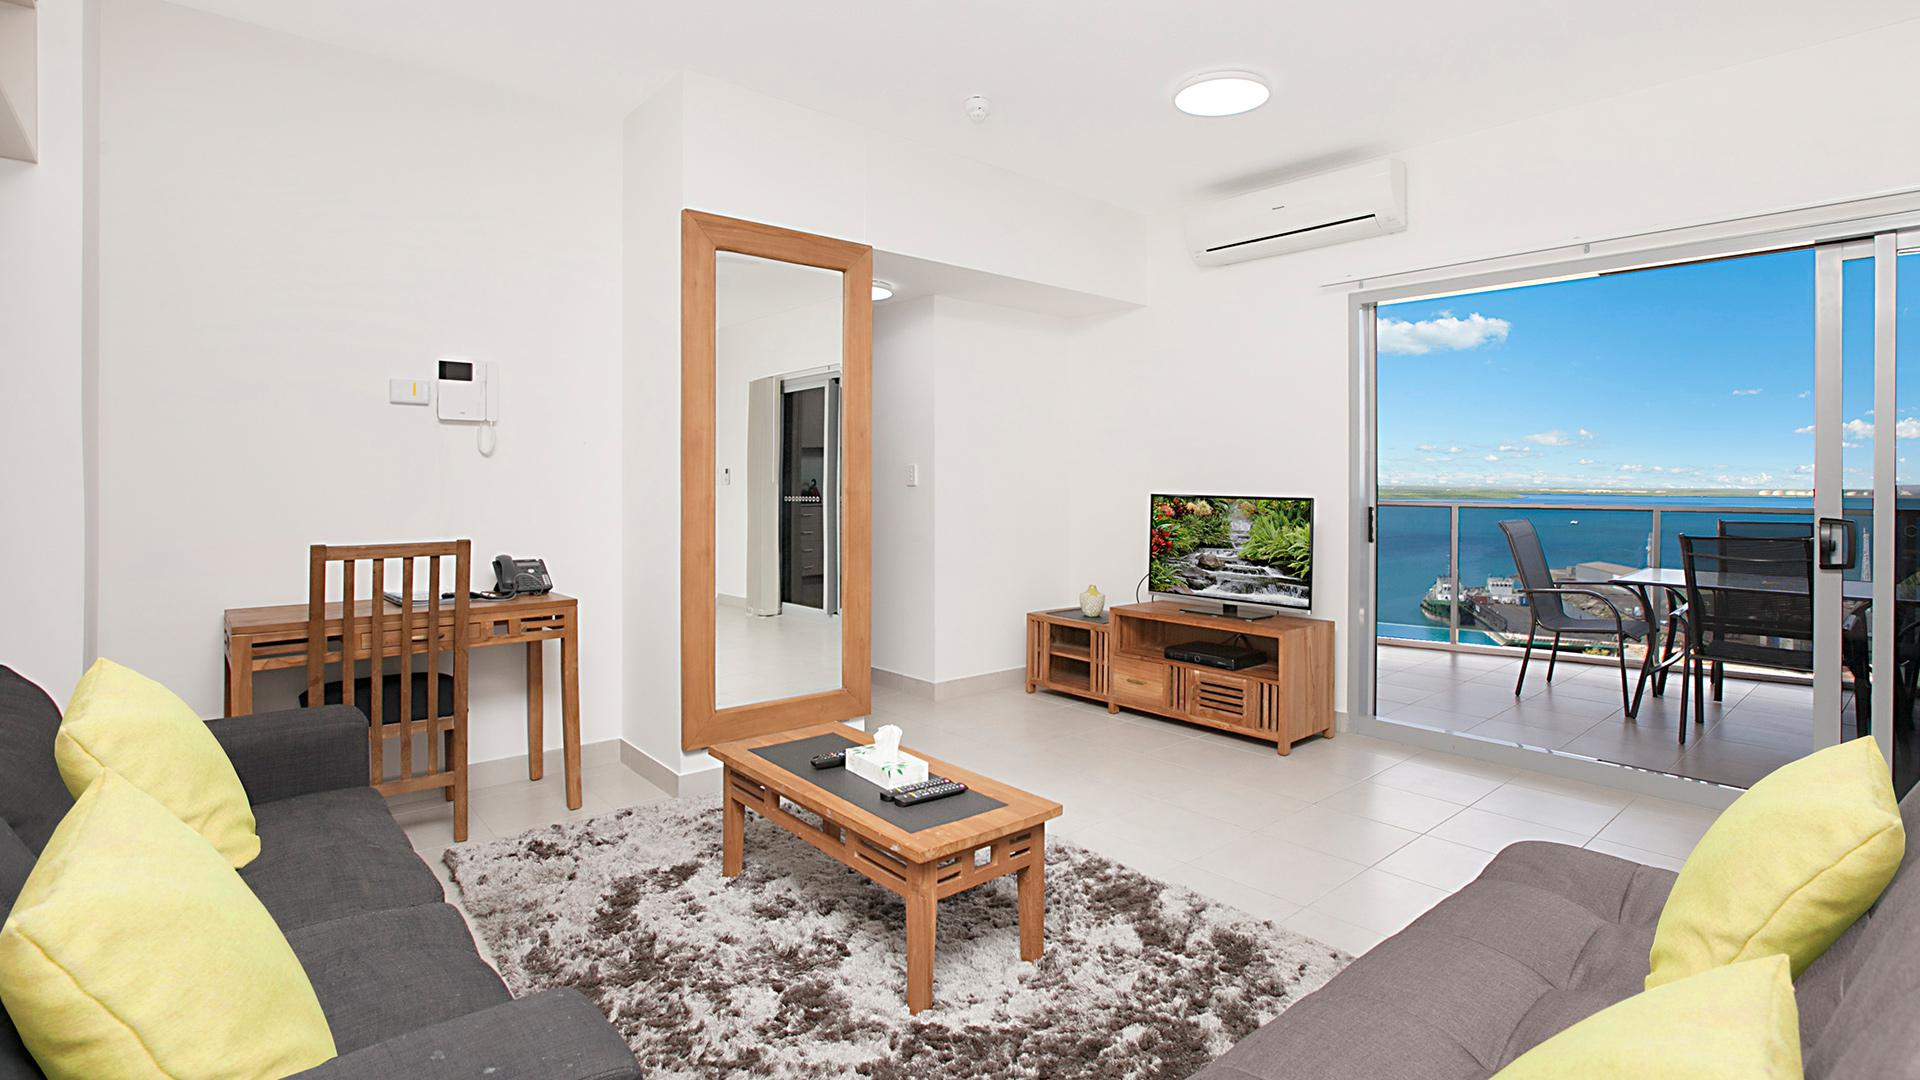 Two-Bedroom Apartment with Harbour Cruise image 1 at Ramada Suites by Wyndham Zen Quarter Darwin by Darwin Municipality, Northern Territory, Australia